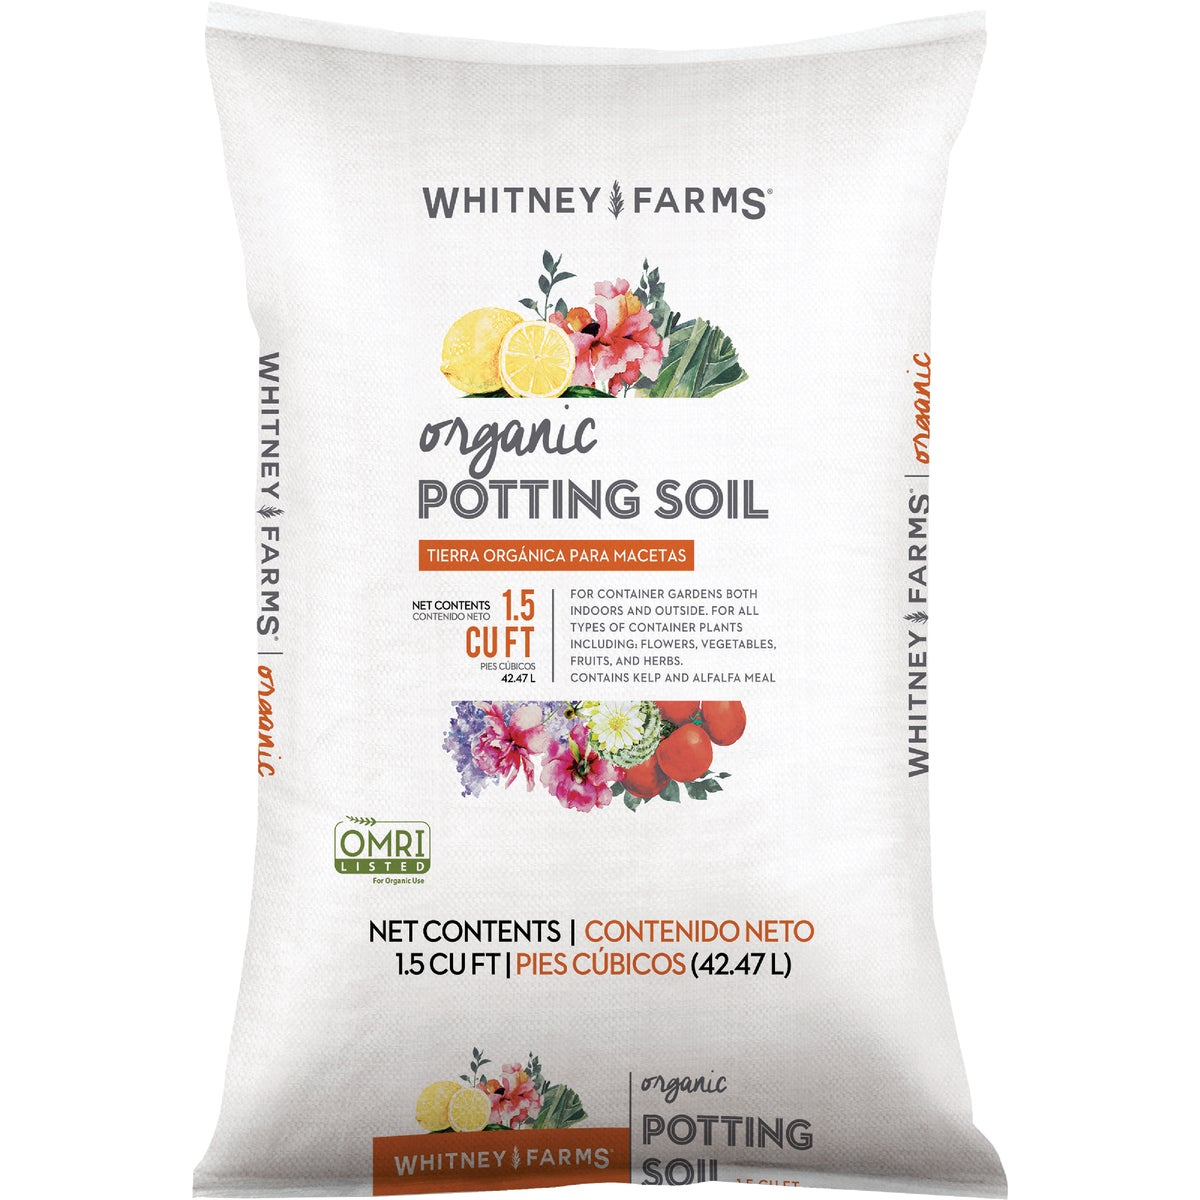 1.5C WF ORGANC POT SOIL - 71659240 by Scotts Organics